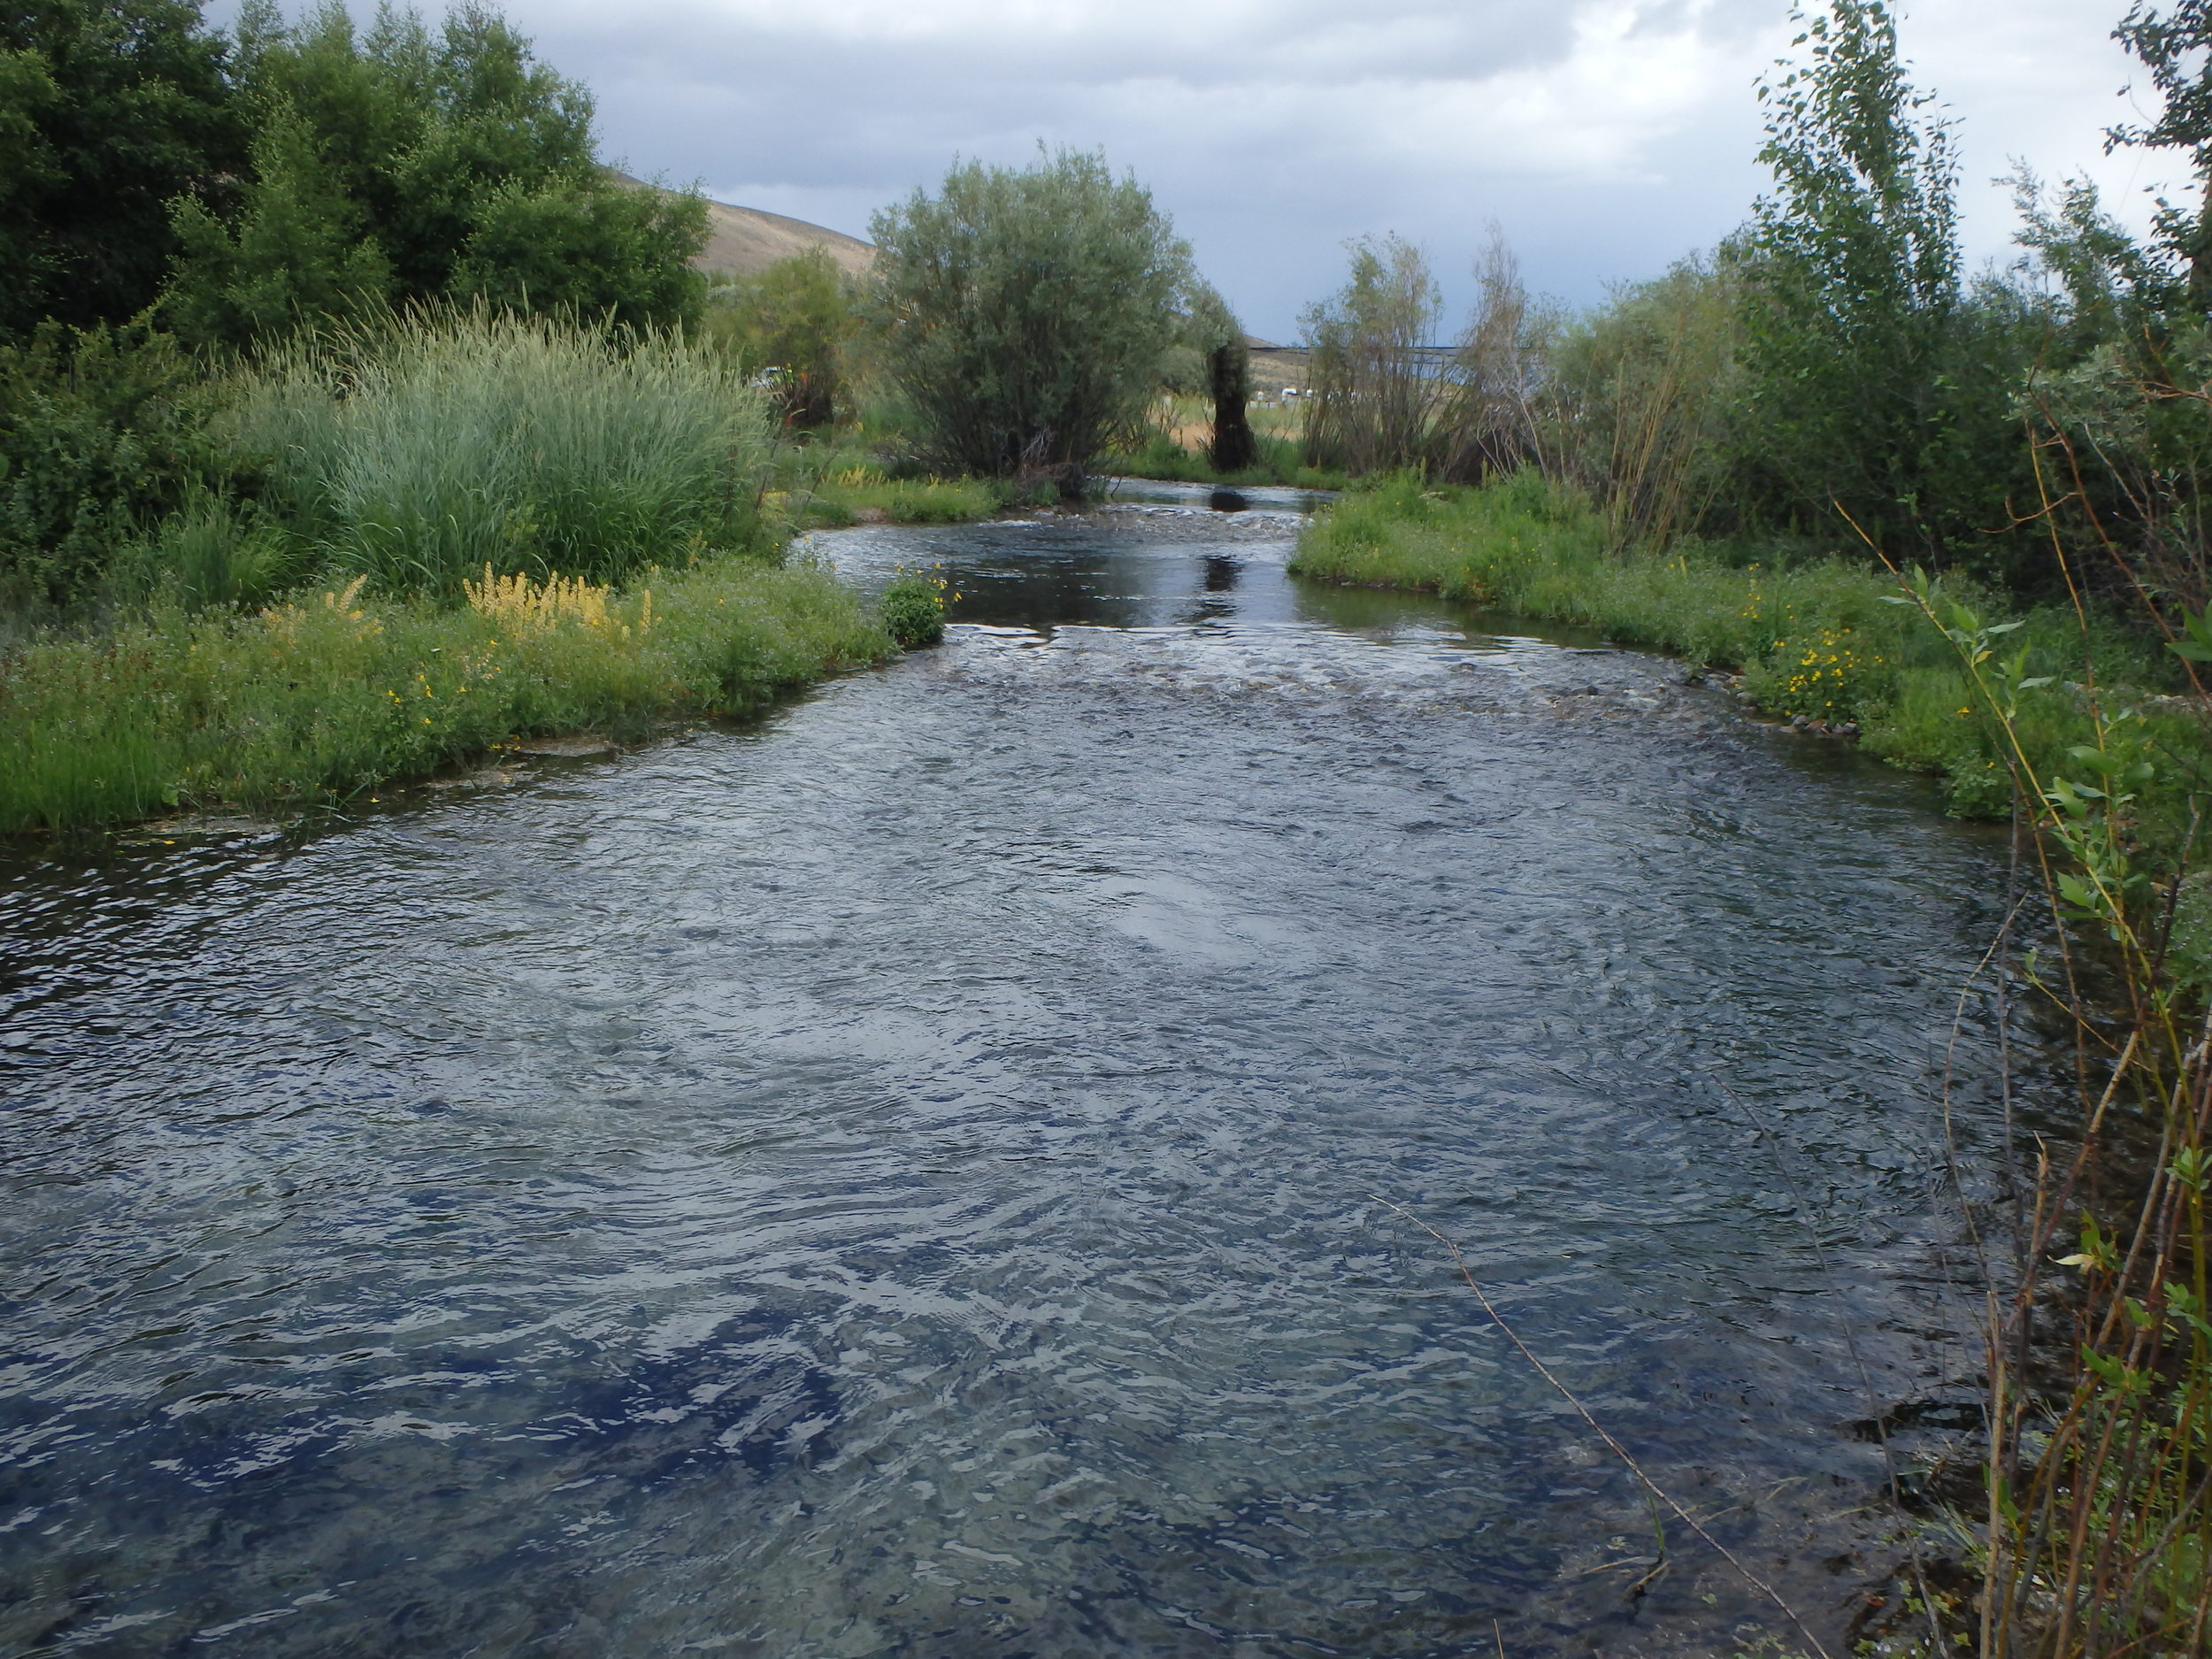 Riffles, grade control logs, excavated pools, and riparian planting for stream restoration